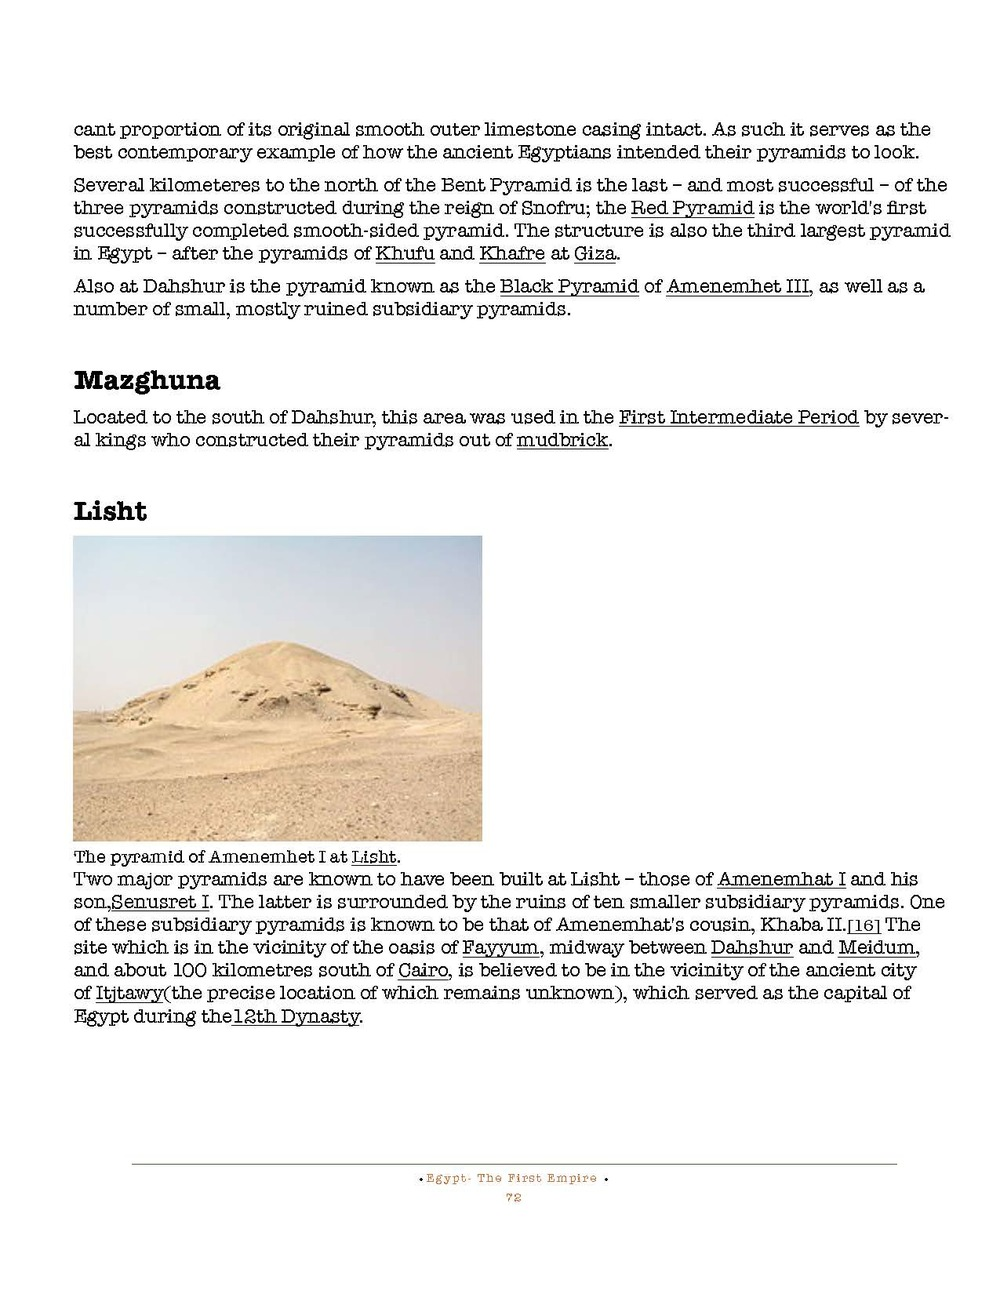 HOCE- Egypt  (First Empire) Notes_Page_072.jpg